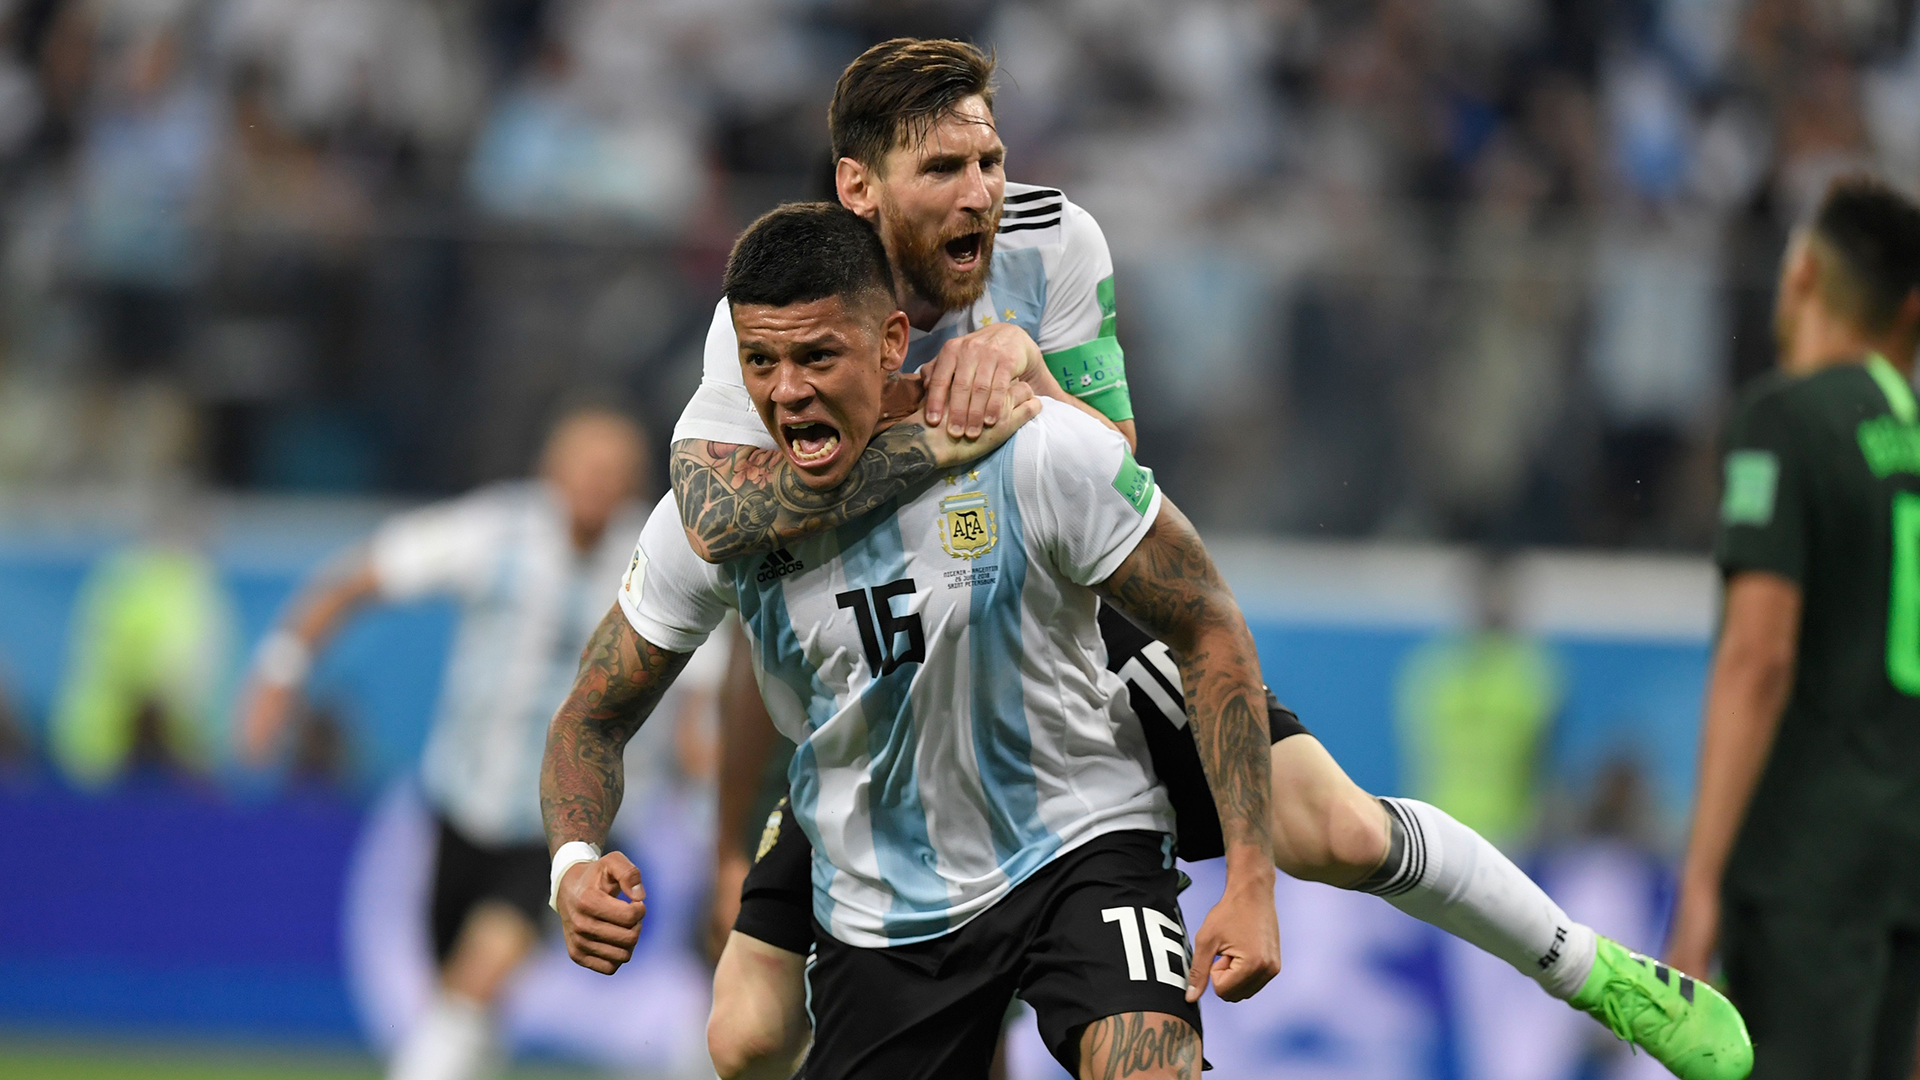 Argentina's Messi is different from Barca's Messi, says Umtiti